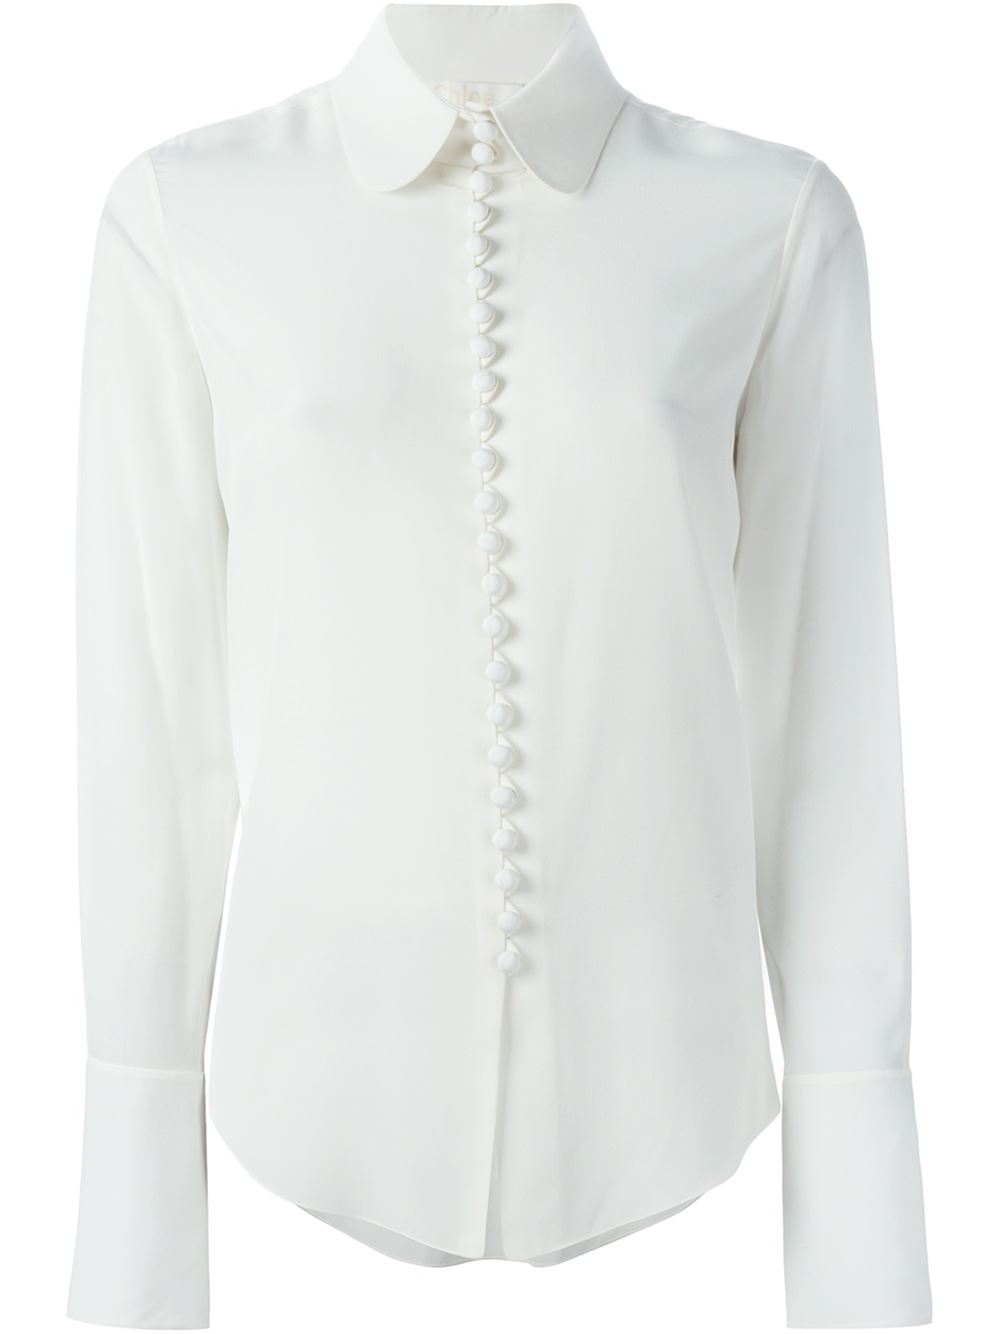 Lyst chlo peter pan collar shirt in white for White cotton shirt peter pan collar